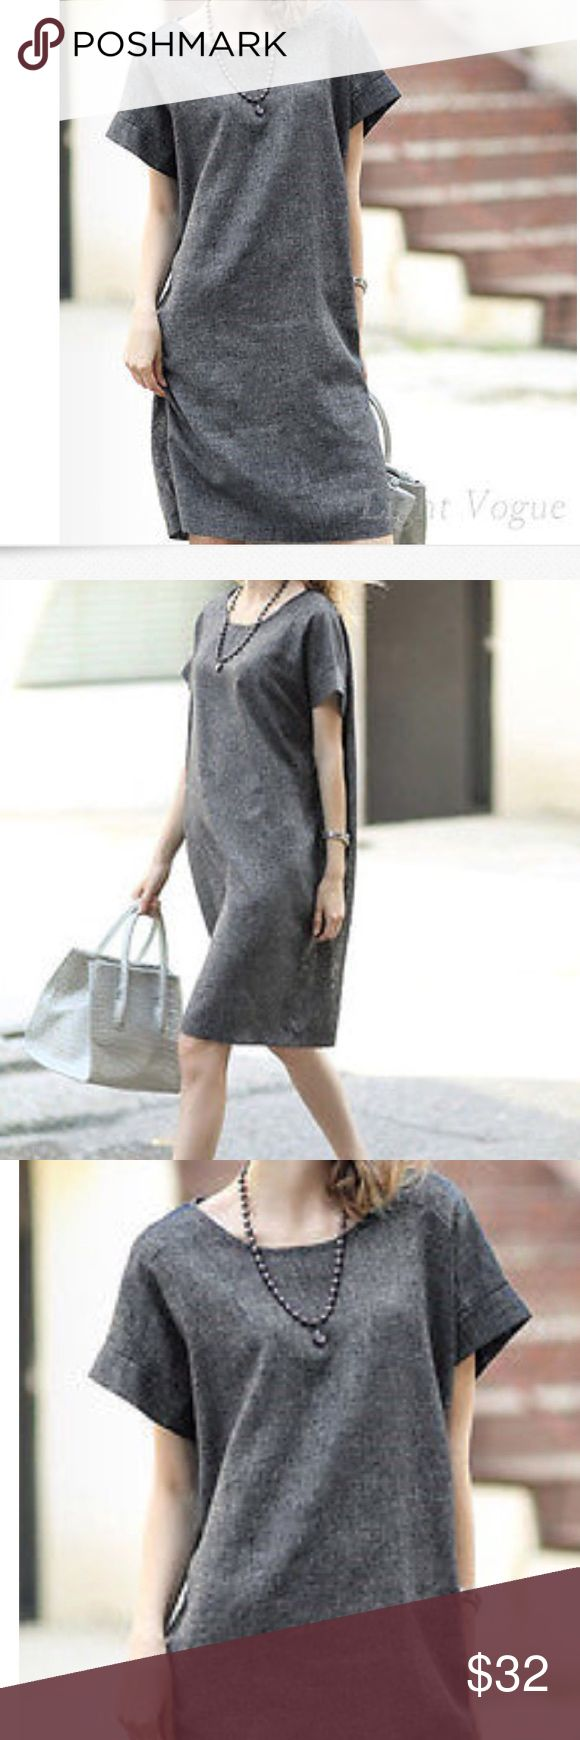 """New LOOSE COTTON LINEN TUNIC SHIRT DRESS New with out tag This gray shirt dress is totally chic. Cap sleeves gives it a smart look. Good for party or office. Cotton linen with 20% polyester. Pit to pit 19"""" 34"""" length  Two side pockets. FS Dresses"""